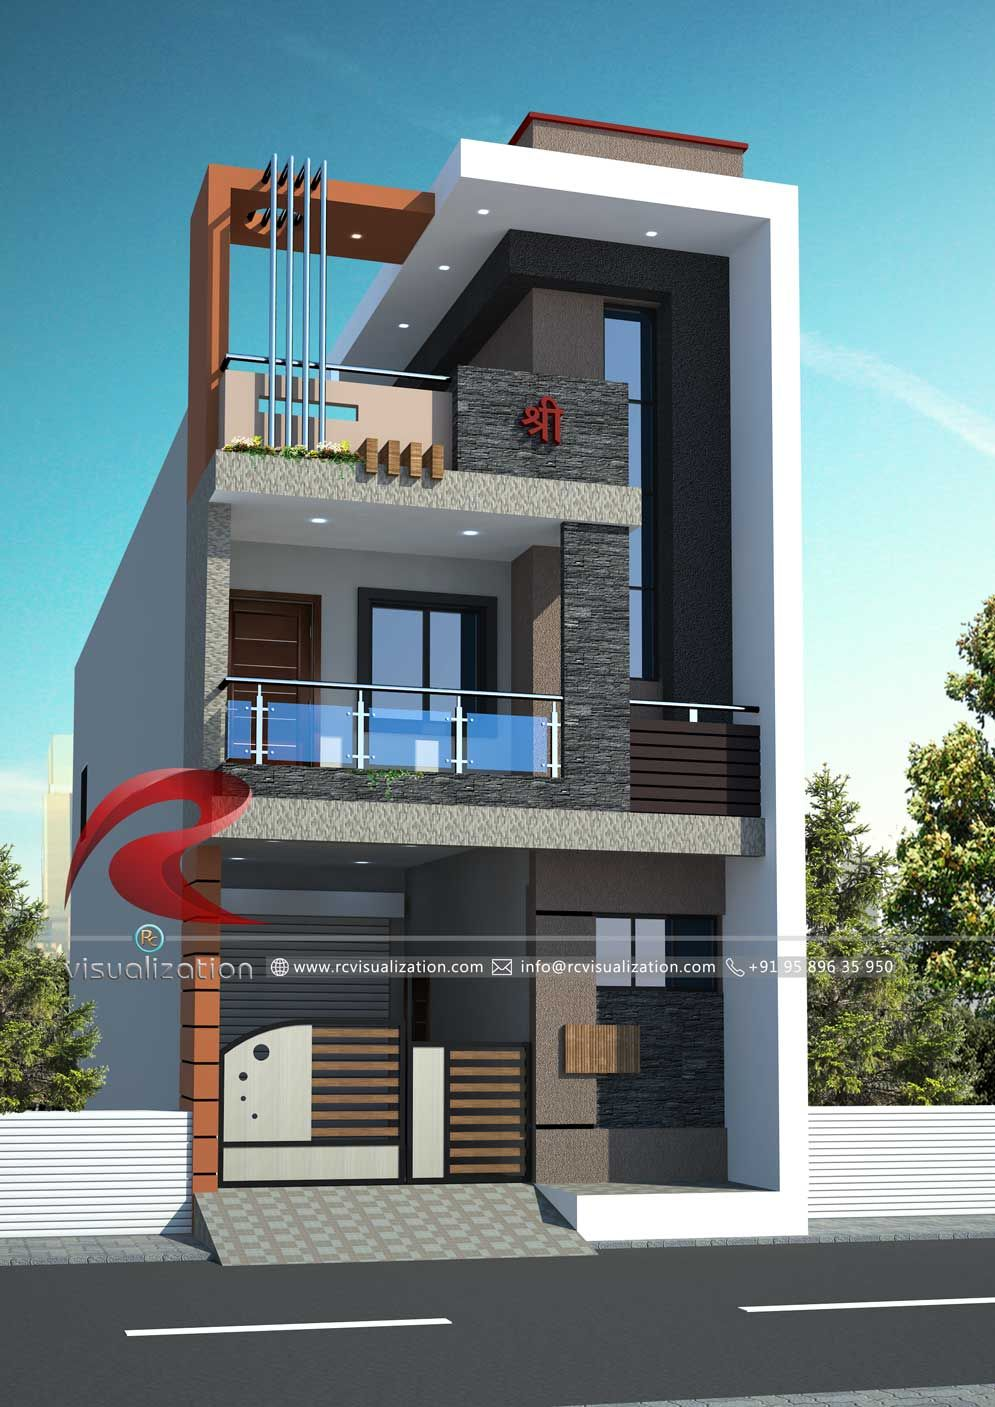 3d Narrow House Designs Gallery Rc Visualization Structural Plan